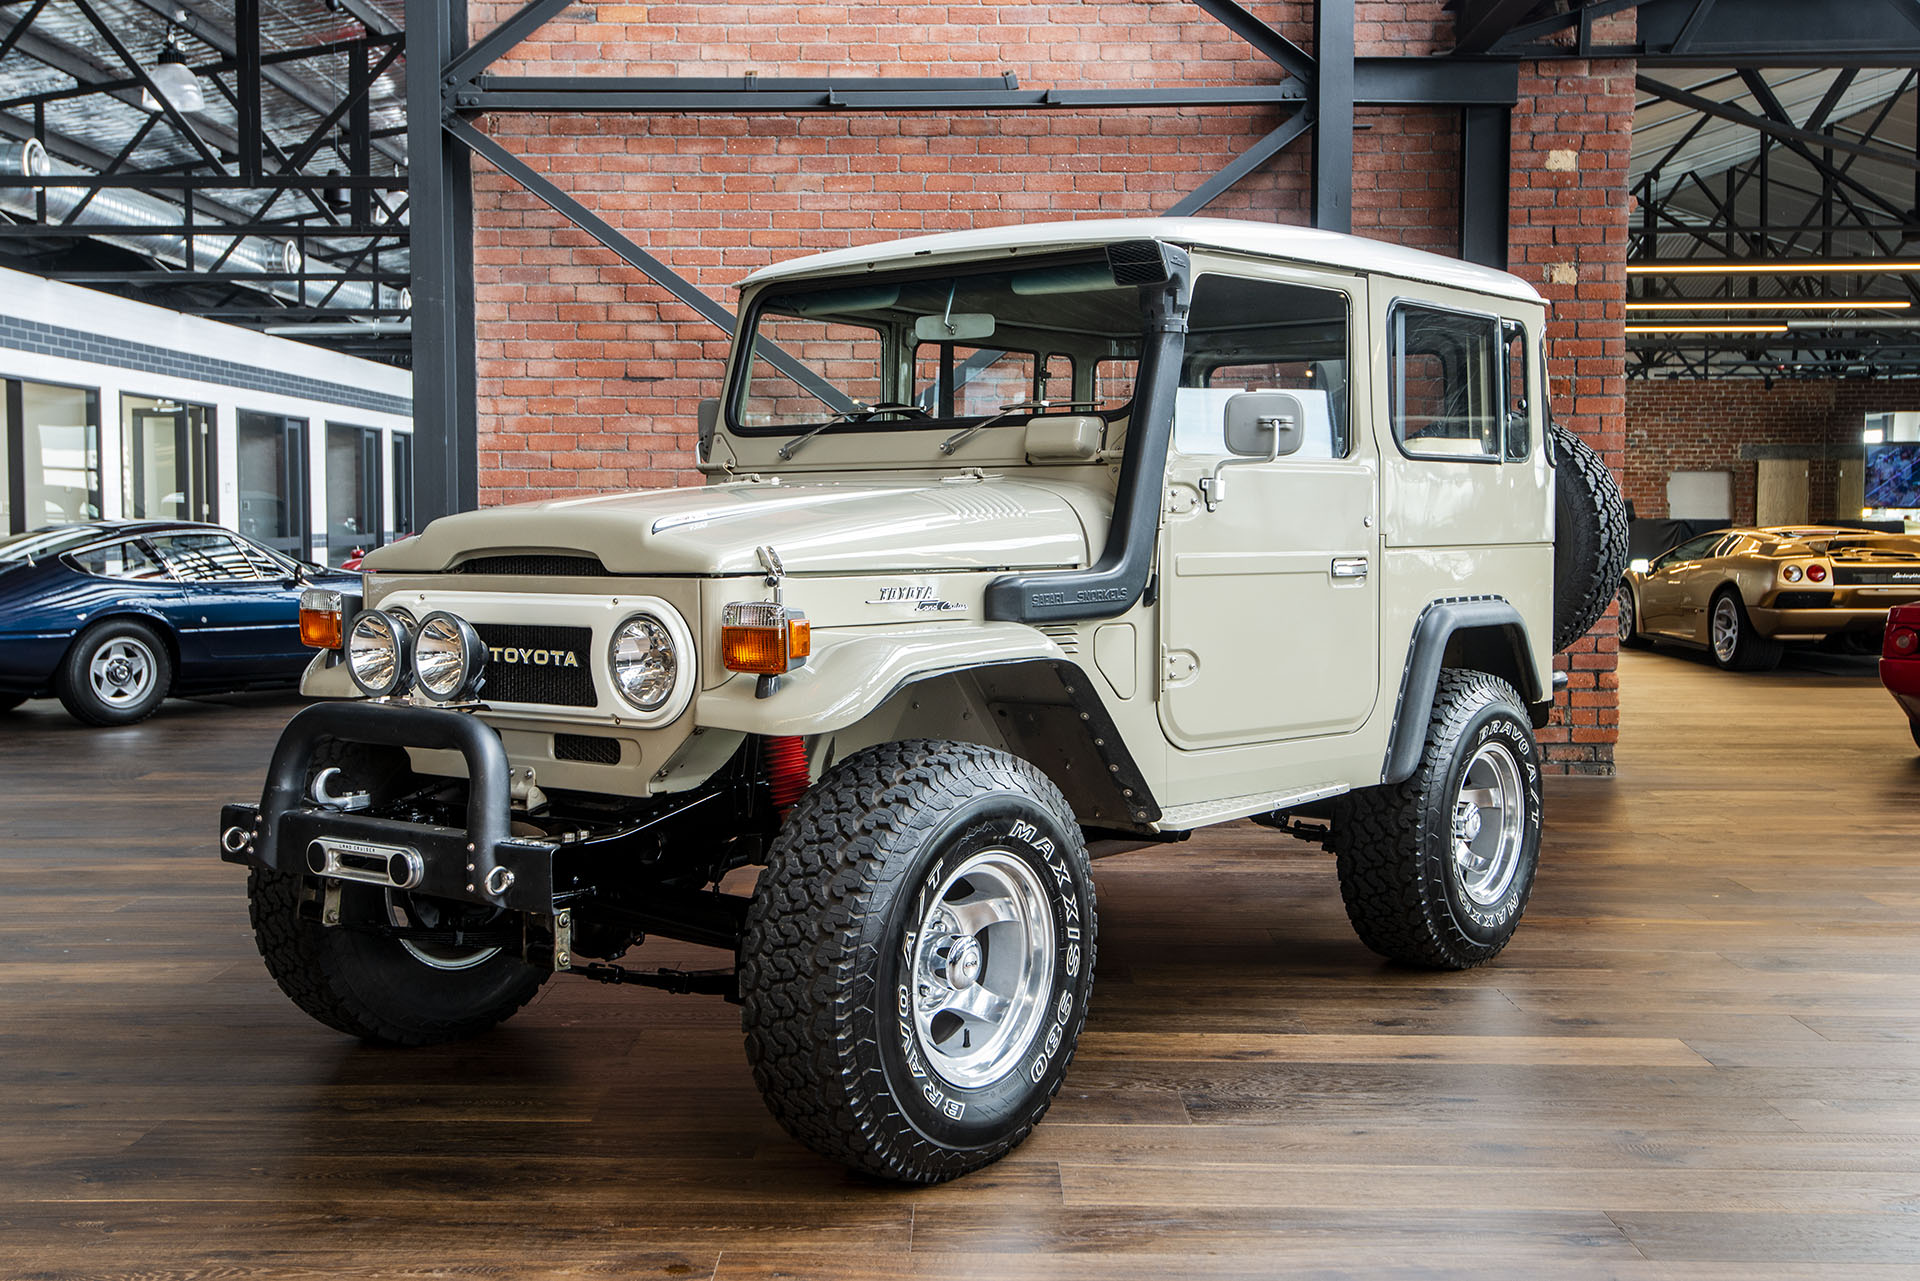 What Transmission Is In My Car >> 1977 Toyota Land Cruiser FJ40 Hardtop - Richmonds - Classic and Prestige Cars - Storage and ...